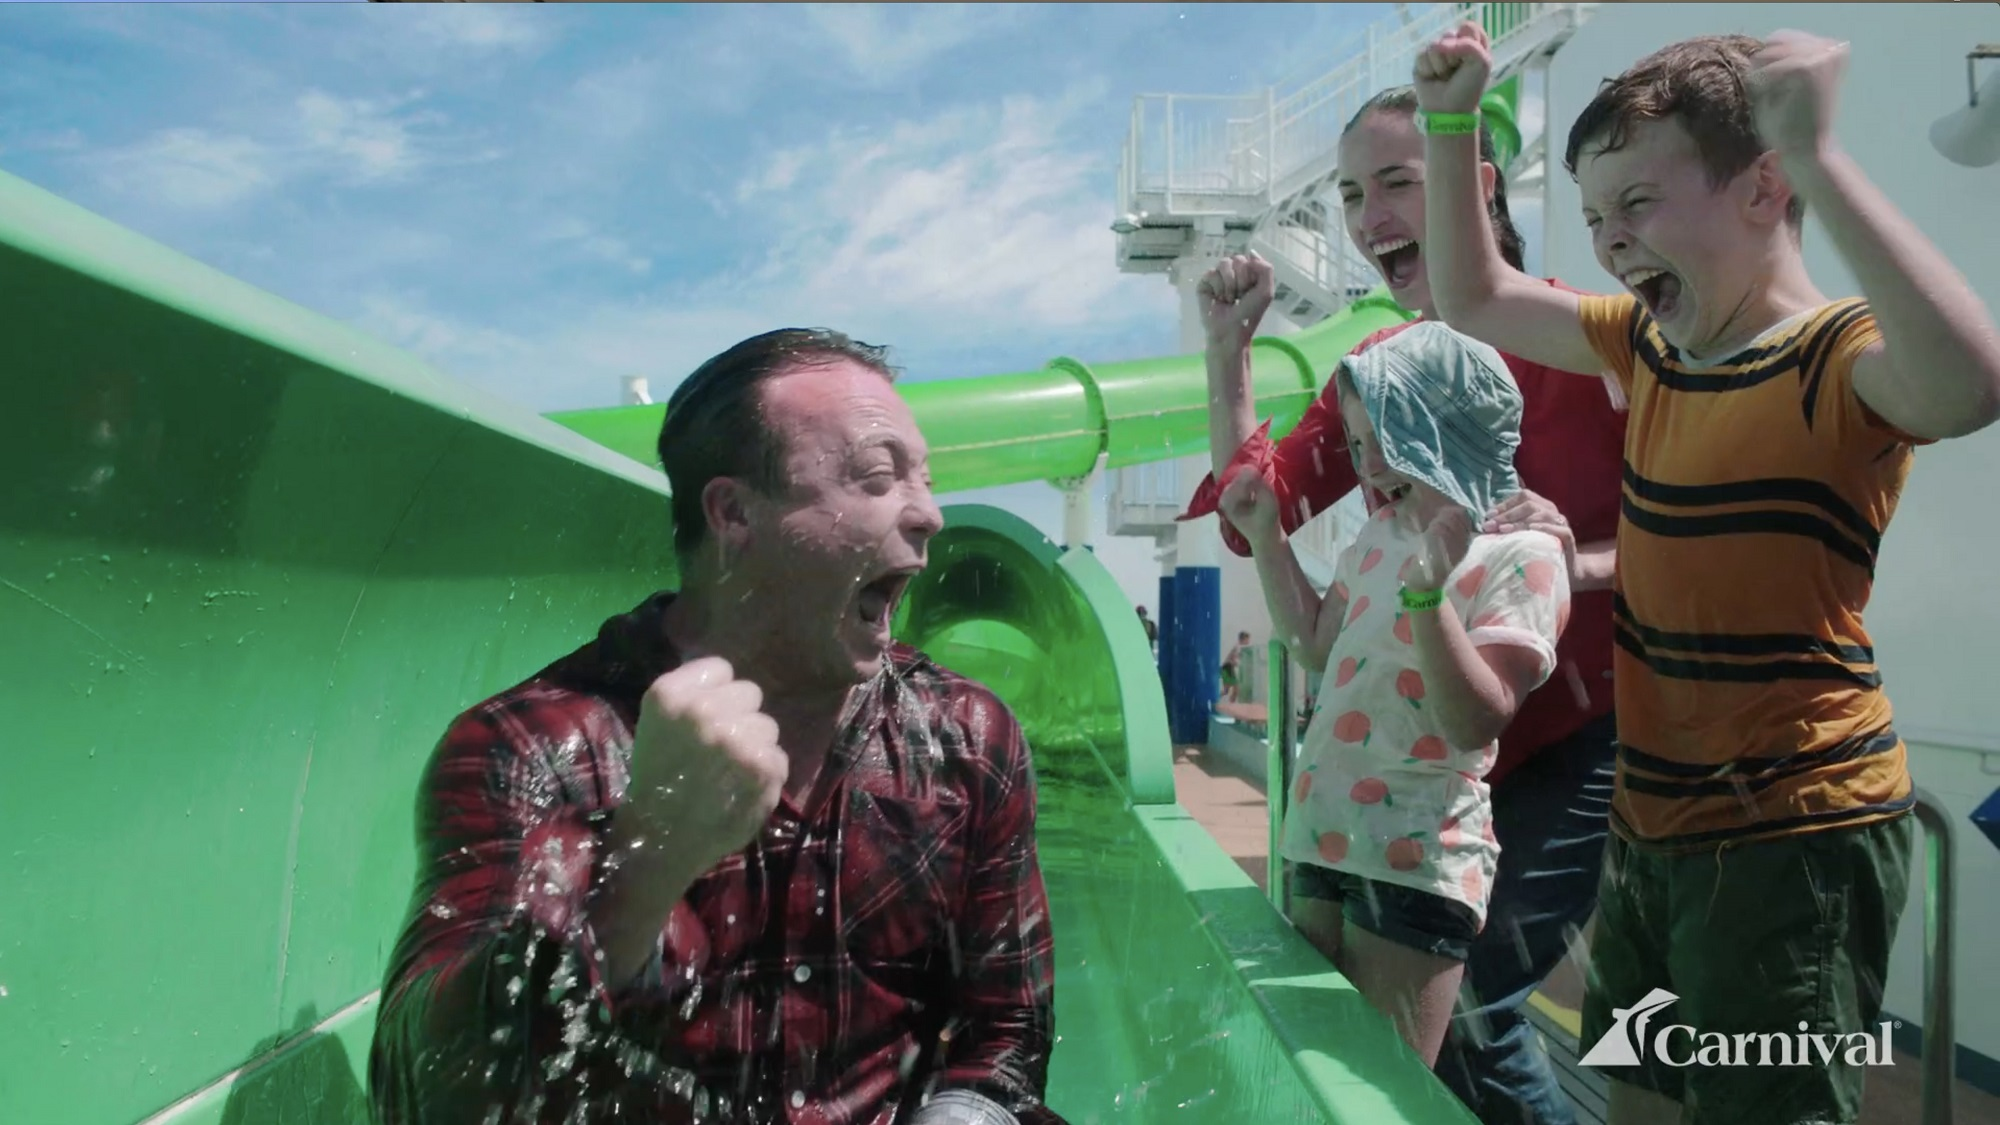 Magic Green Thunder waterslide (Carnival Cruise Line campaign) [3]